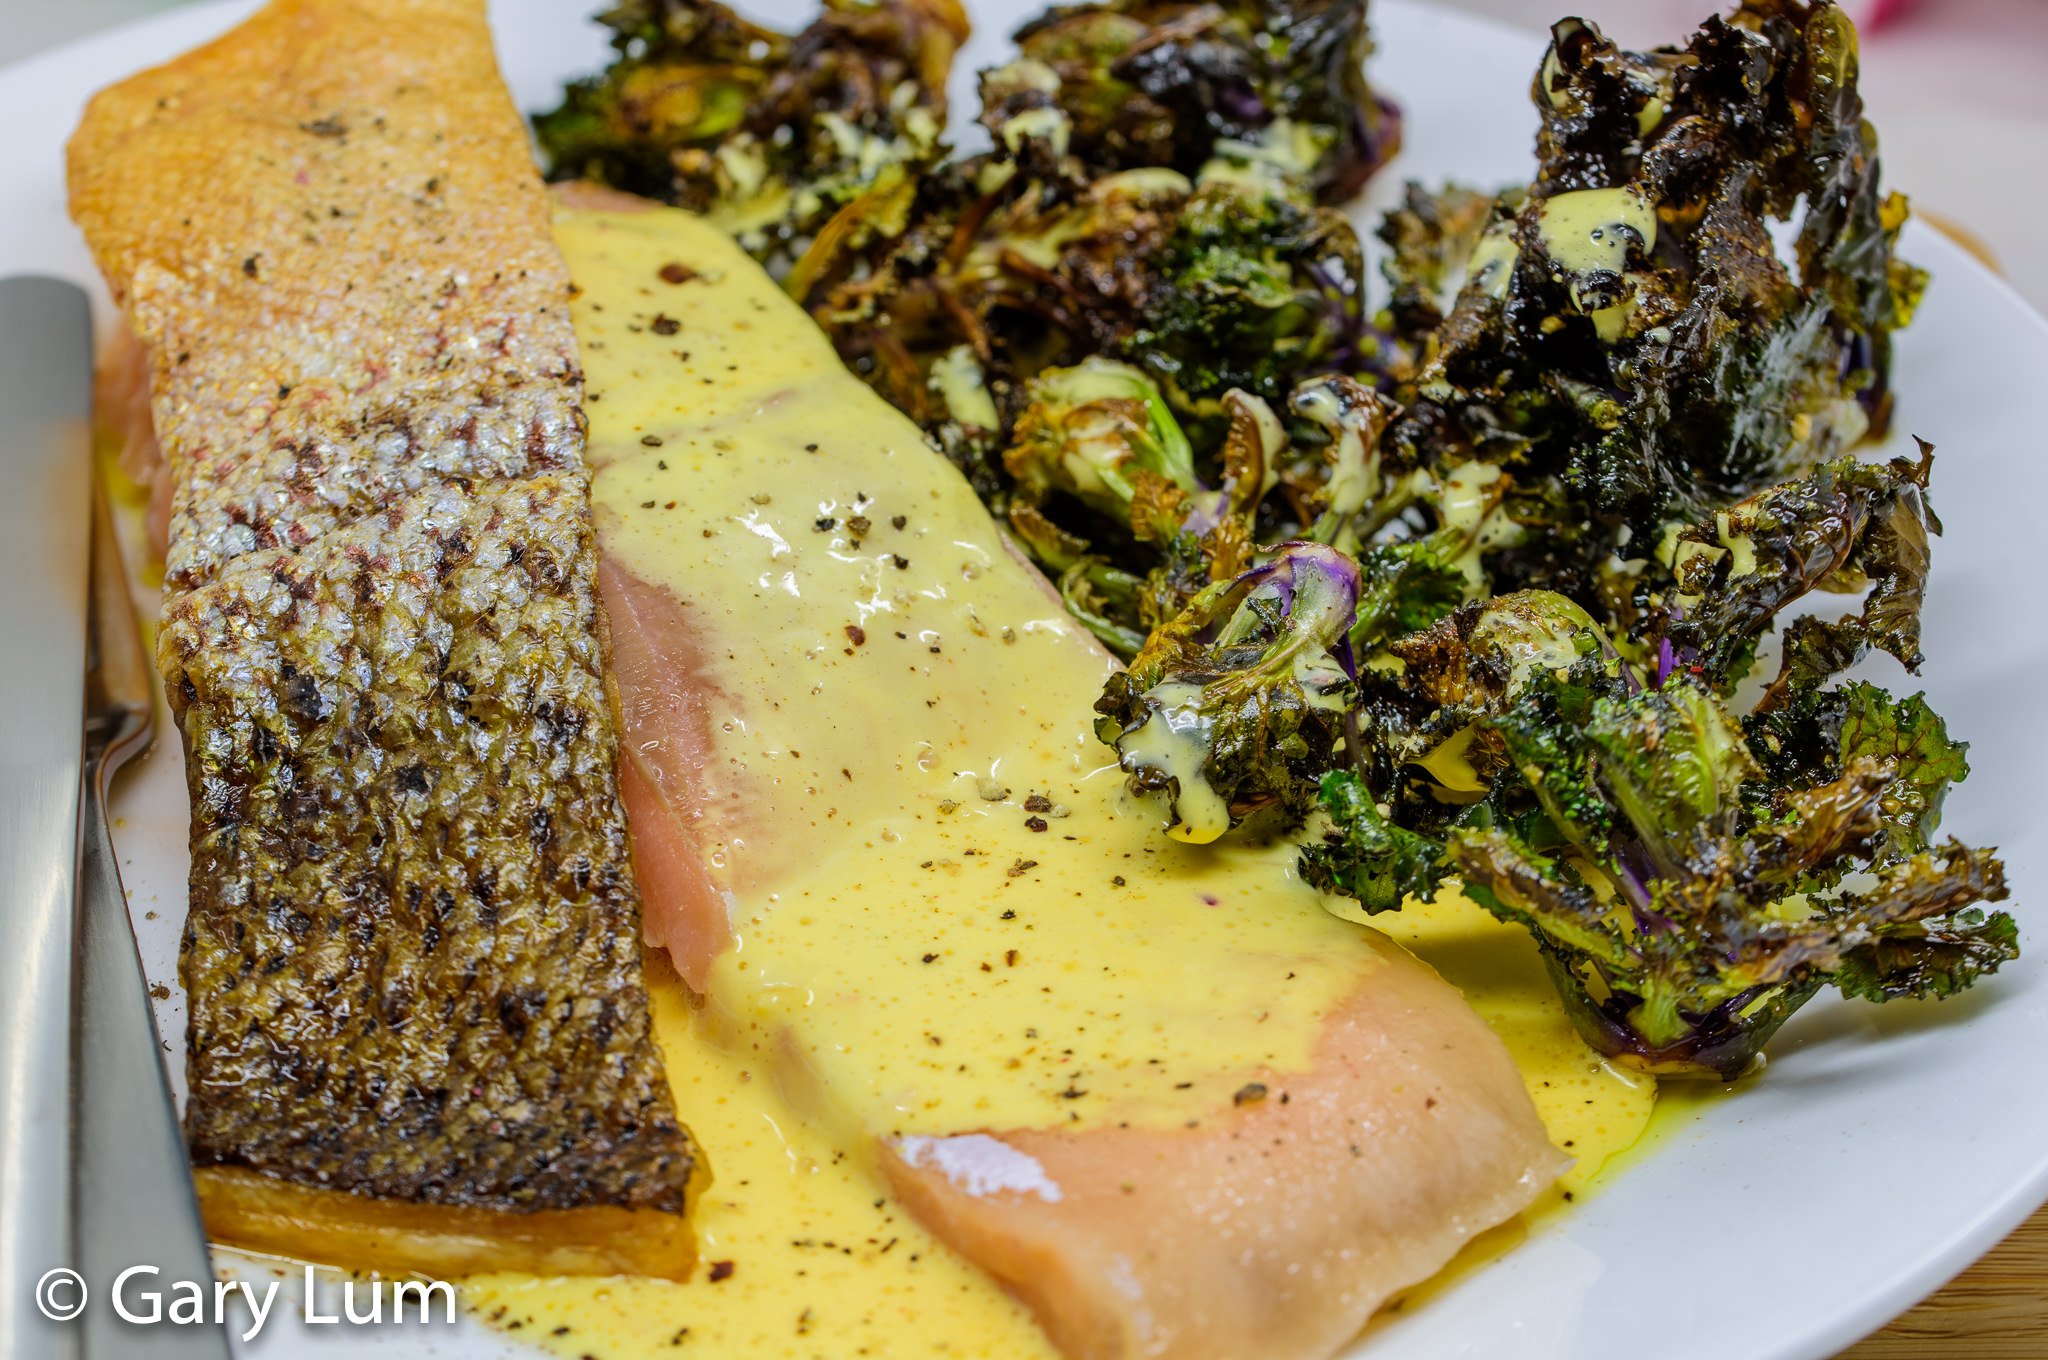 Sous vide salmon, spicy hollandaise sauce, and kale sprouts